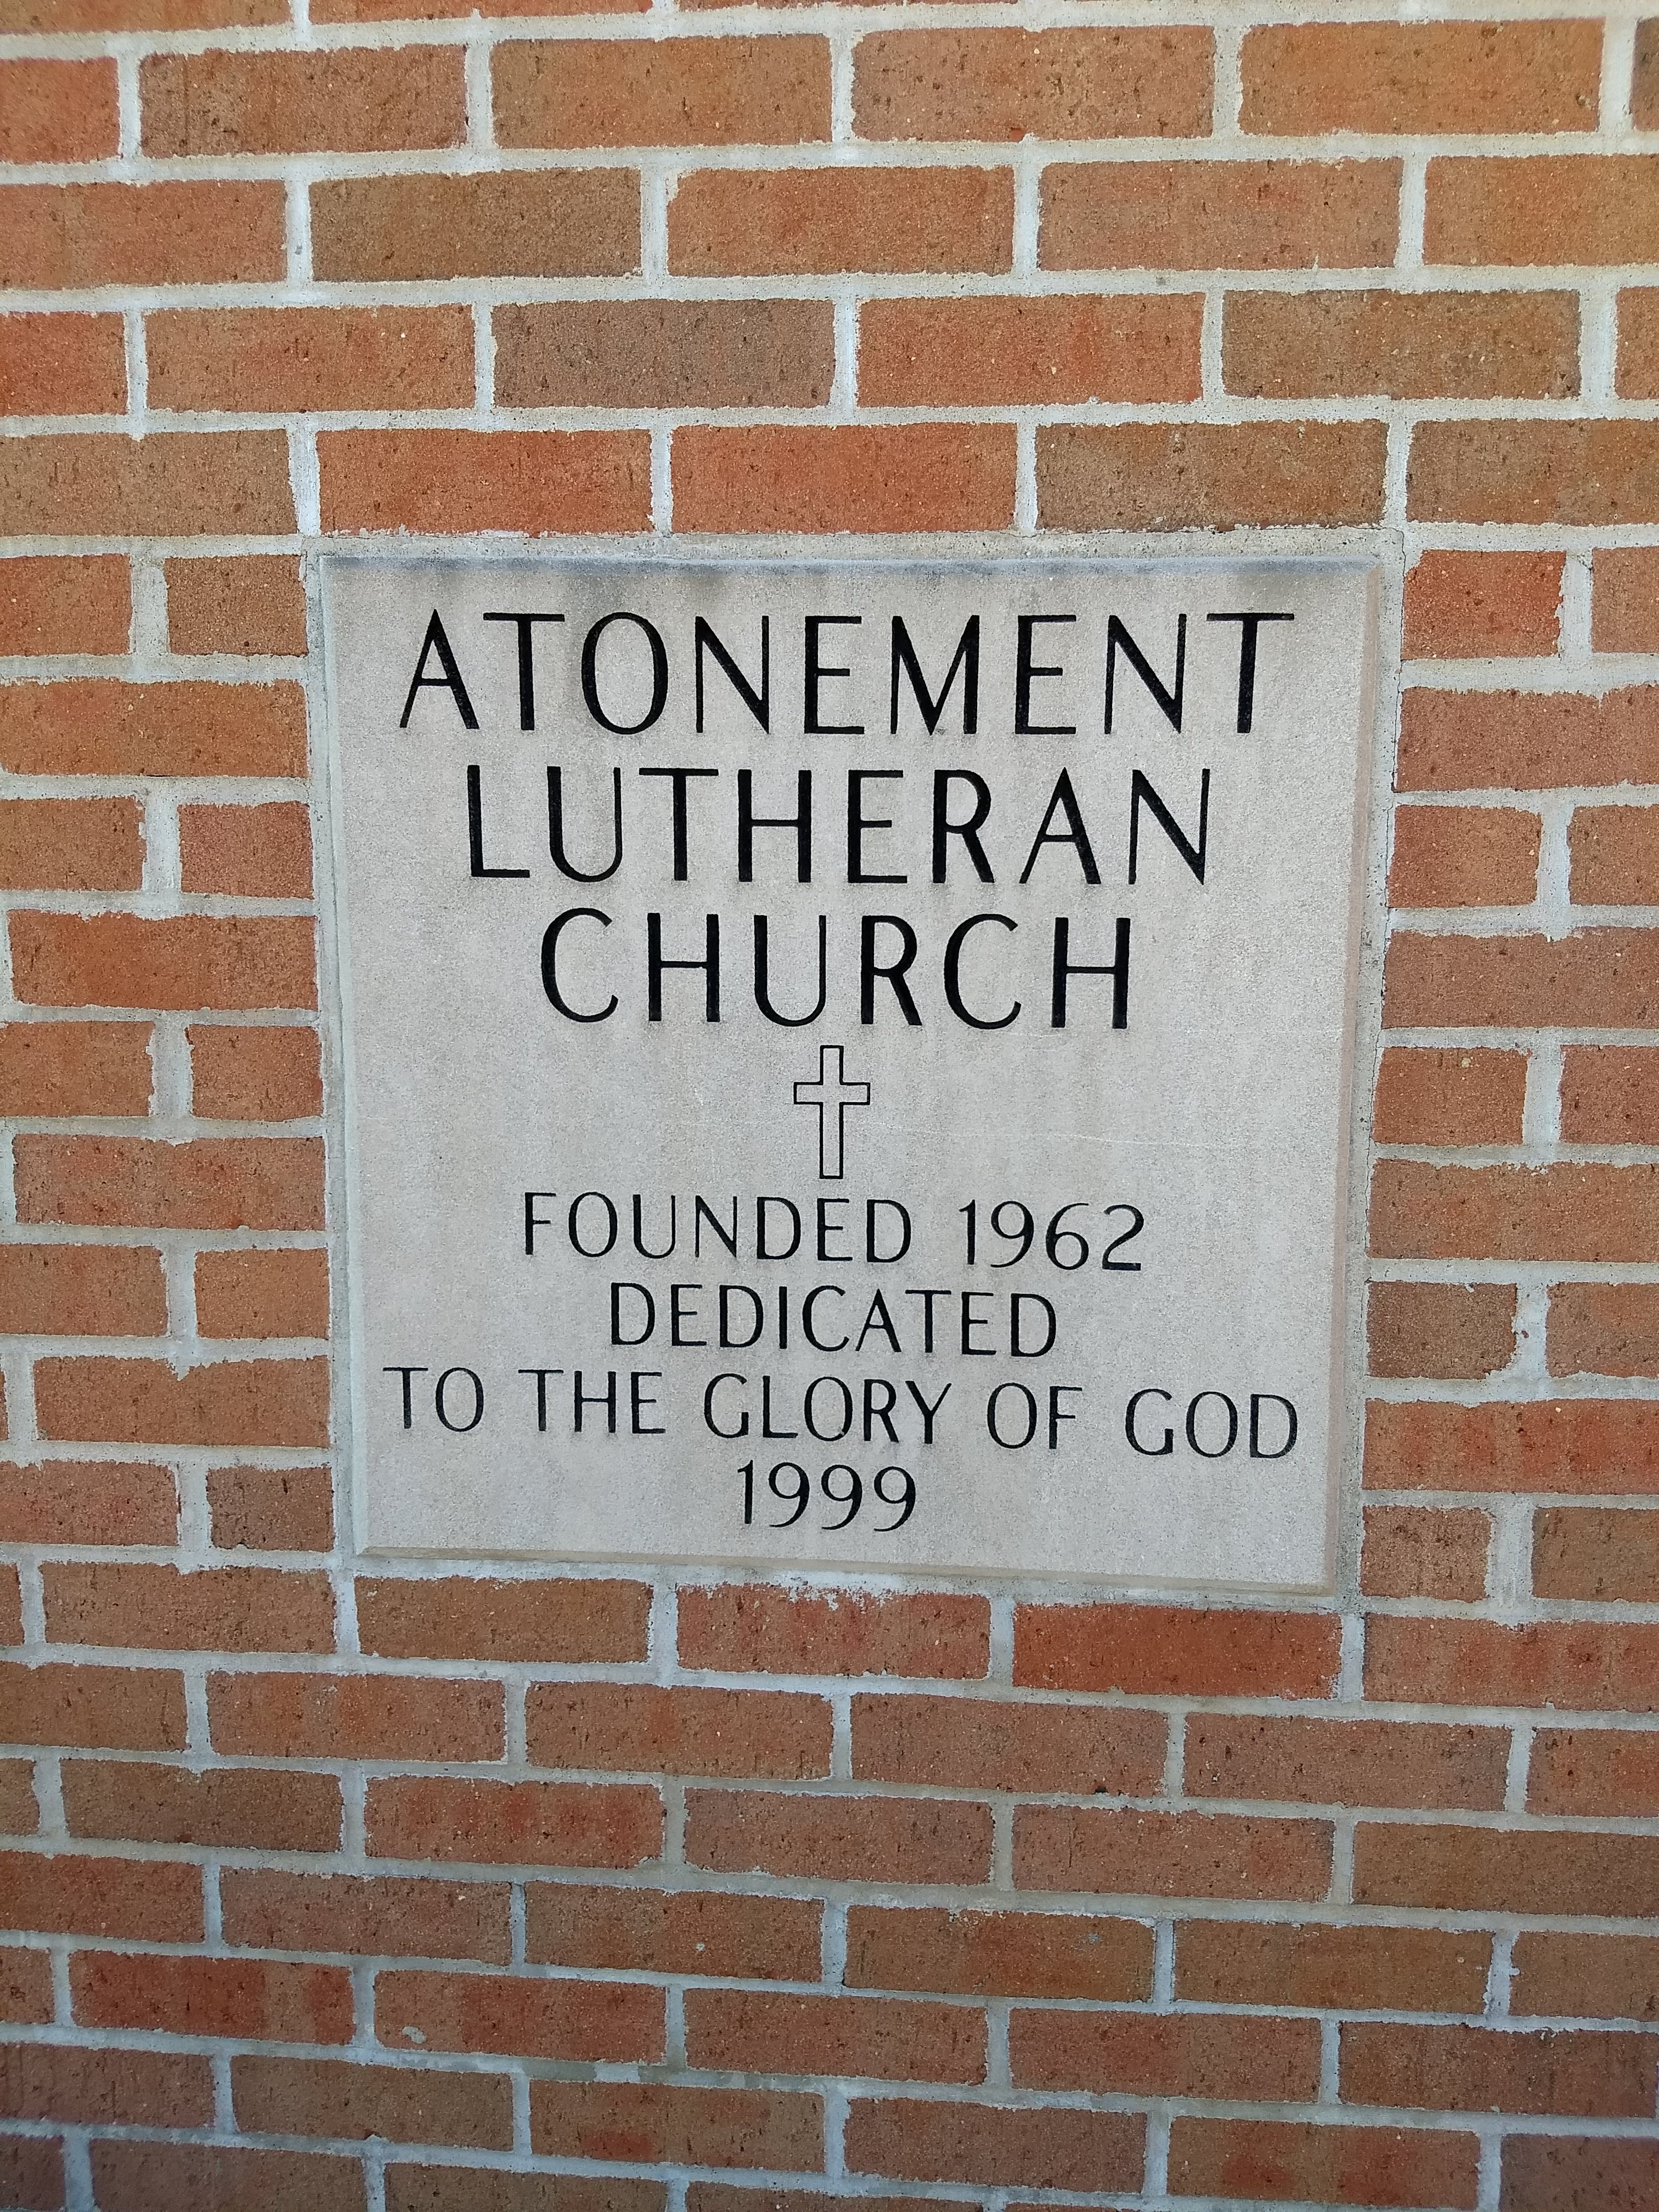 Atonement Lutheran Church was founded in 1962